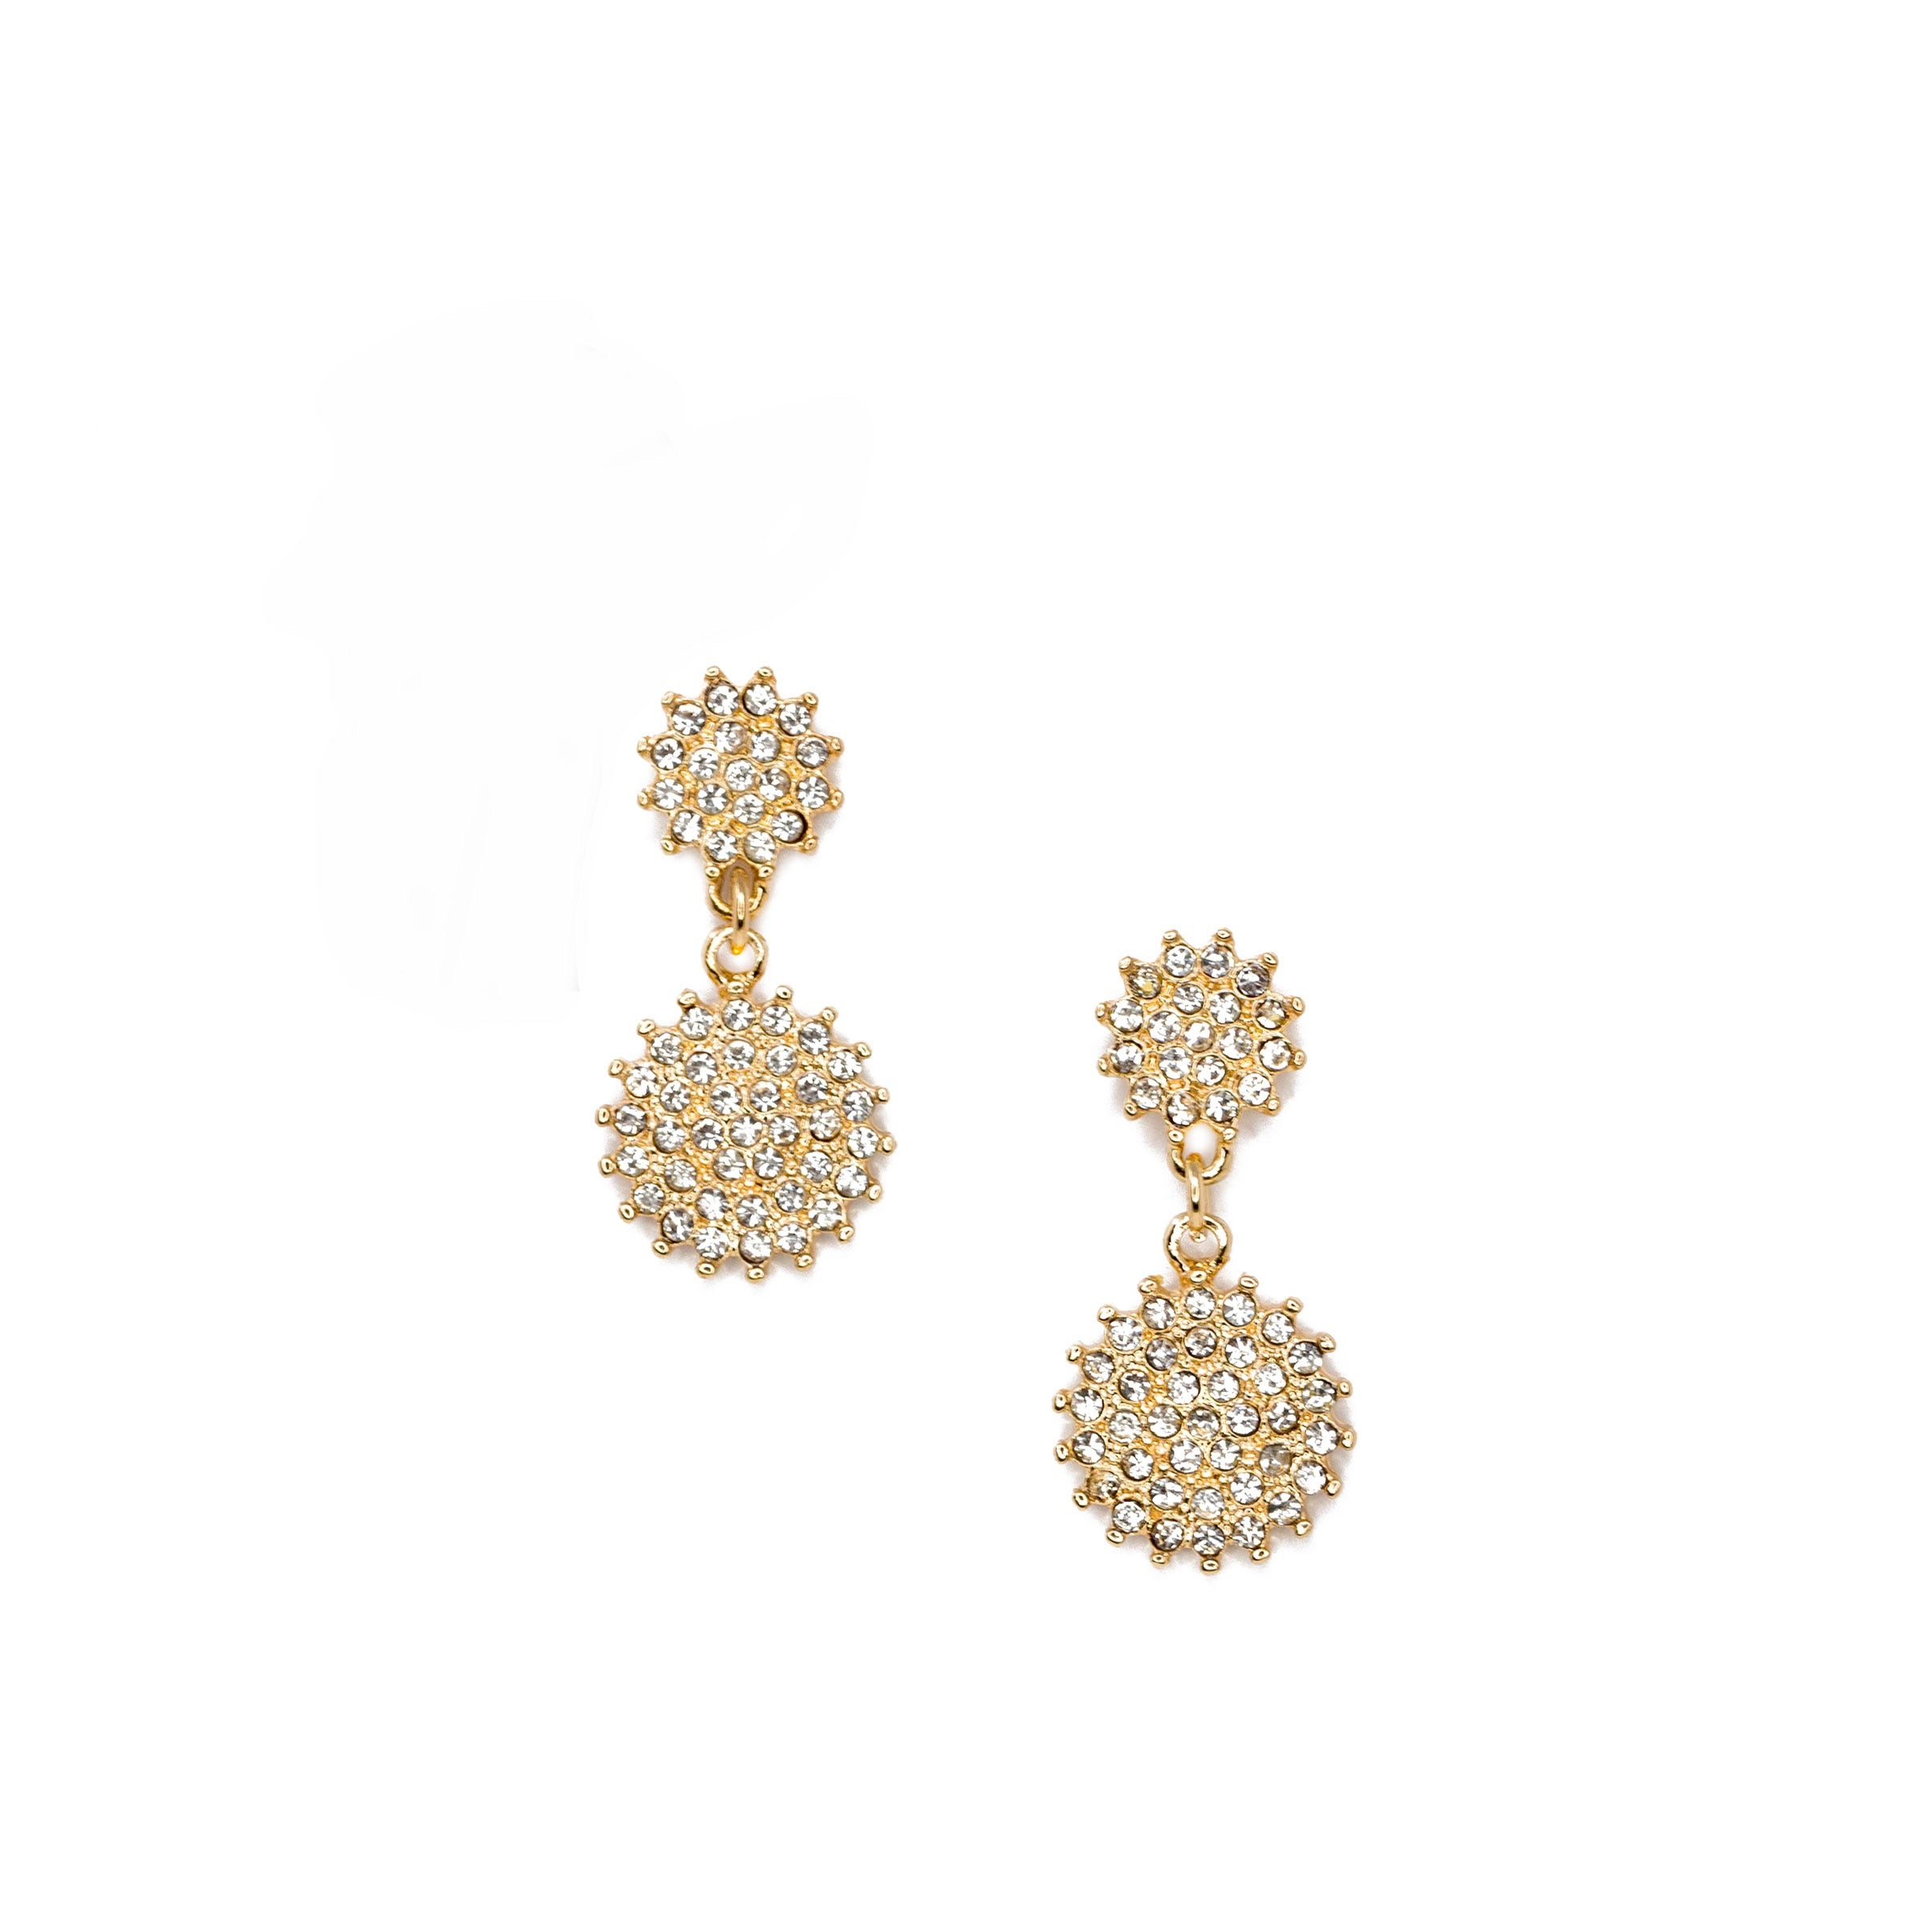 gold starburst drop earrings